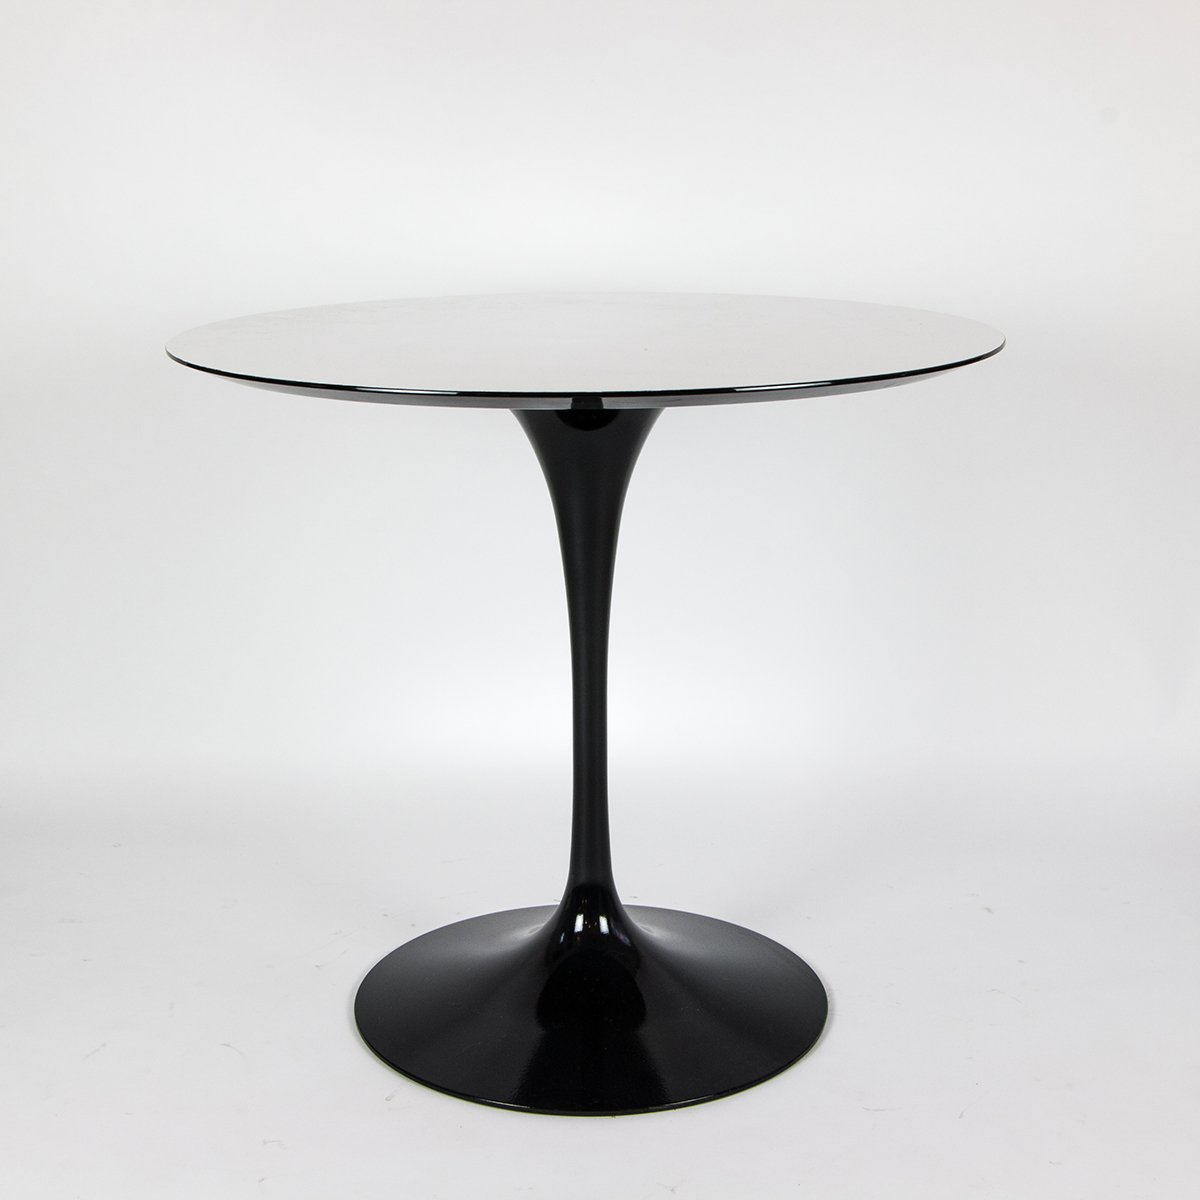 Saarinen Knoll Table Vintage Tulip Table By Eero Saarinen For Knoll